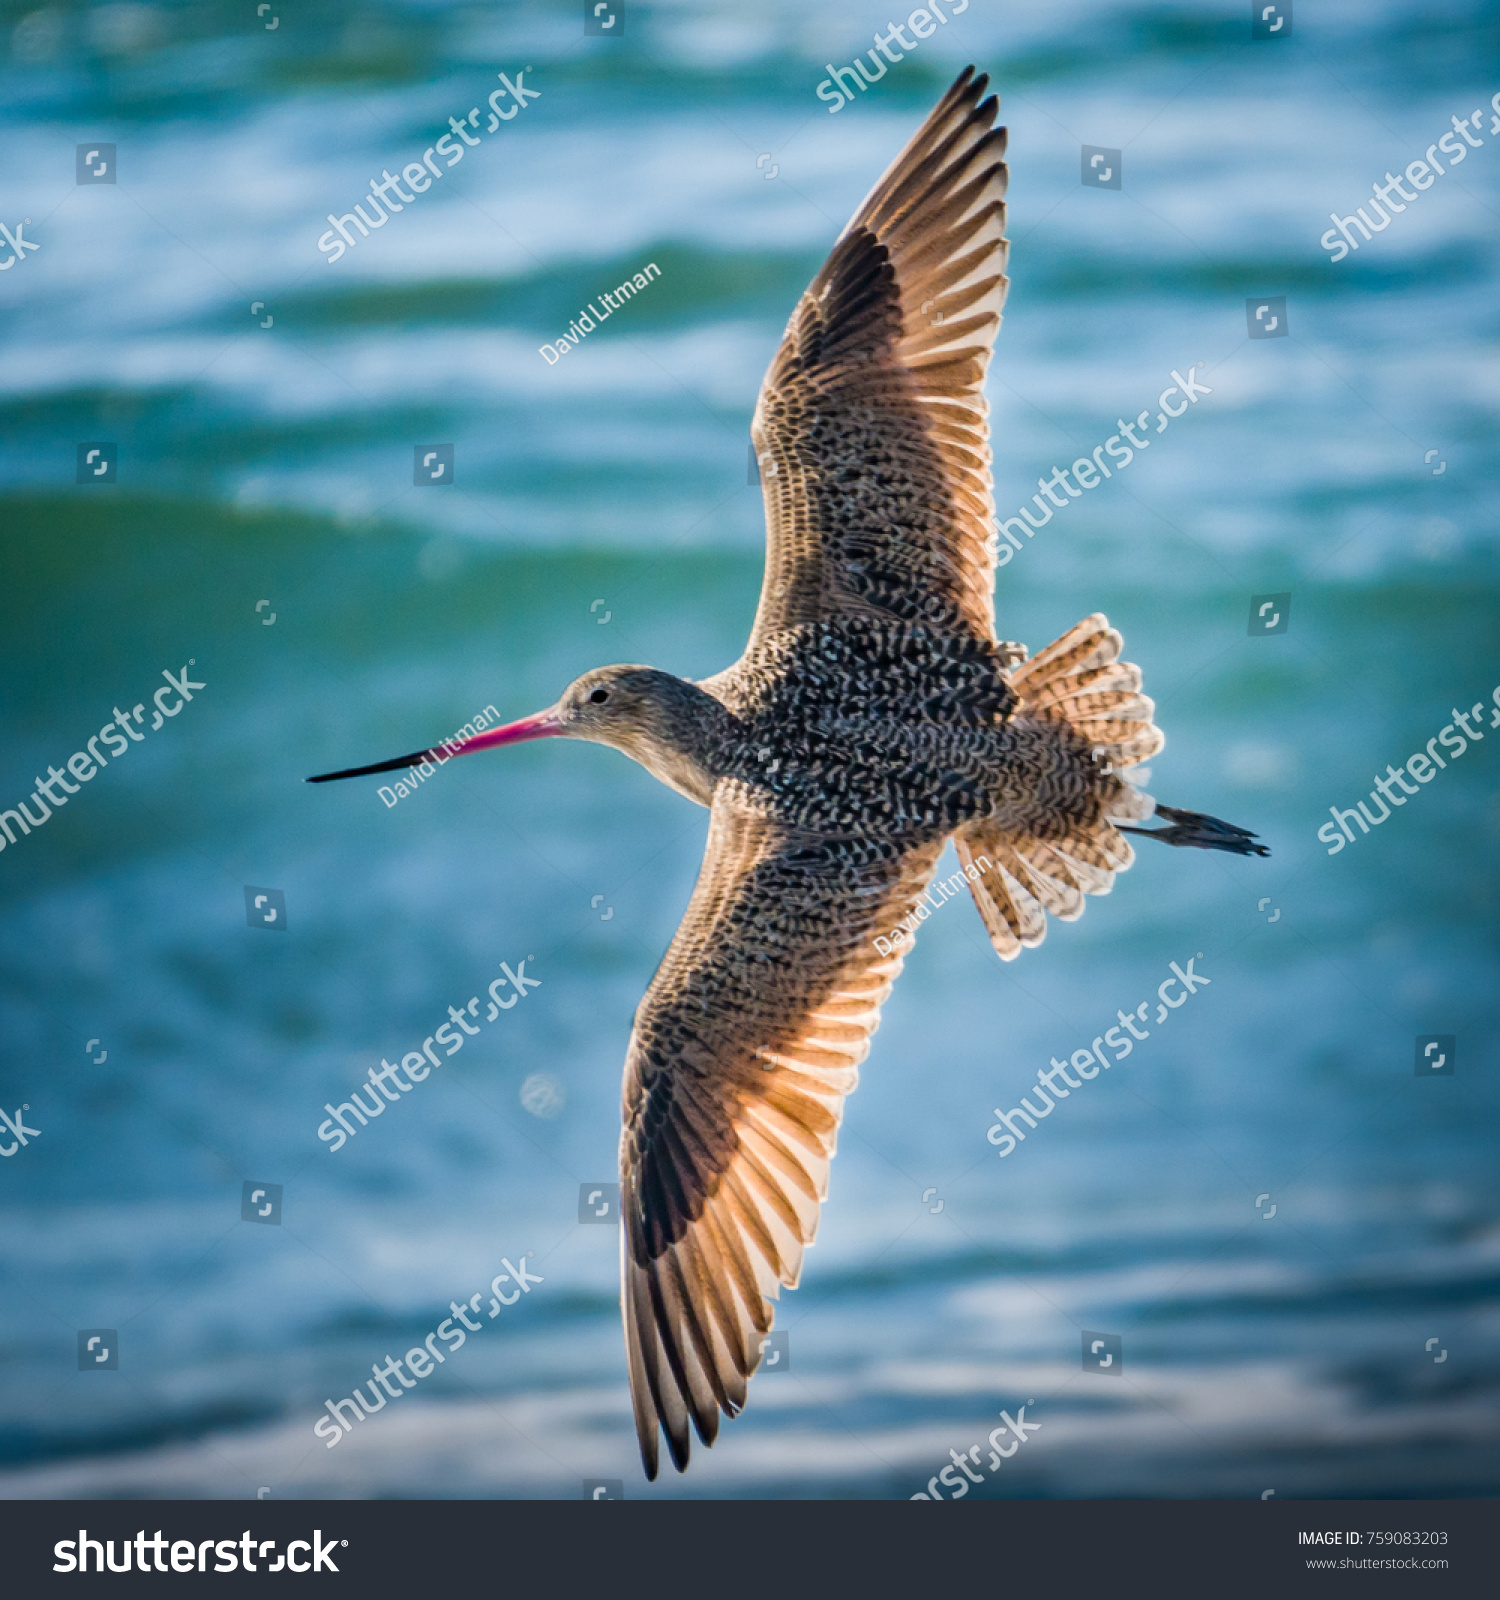 A Marbled Godwit (Limosa fedoa), a type of Sandpiper, flies through the sky with its wings spread wide, at the beach in Moss Landing, along the Pacific Coast in the Monterey Bay of central California.